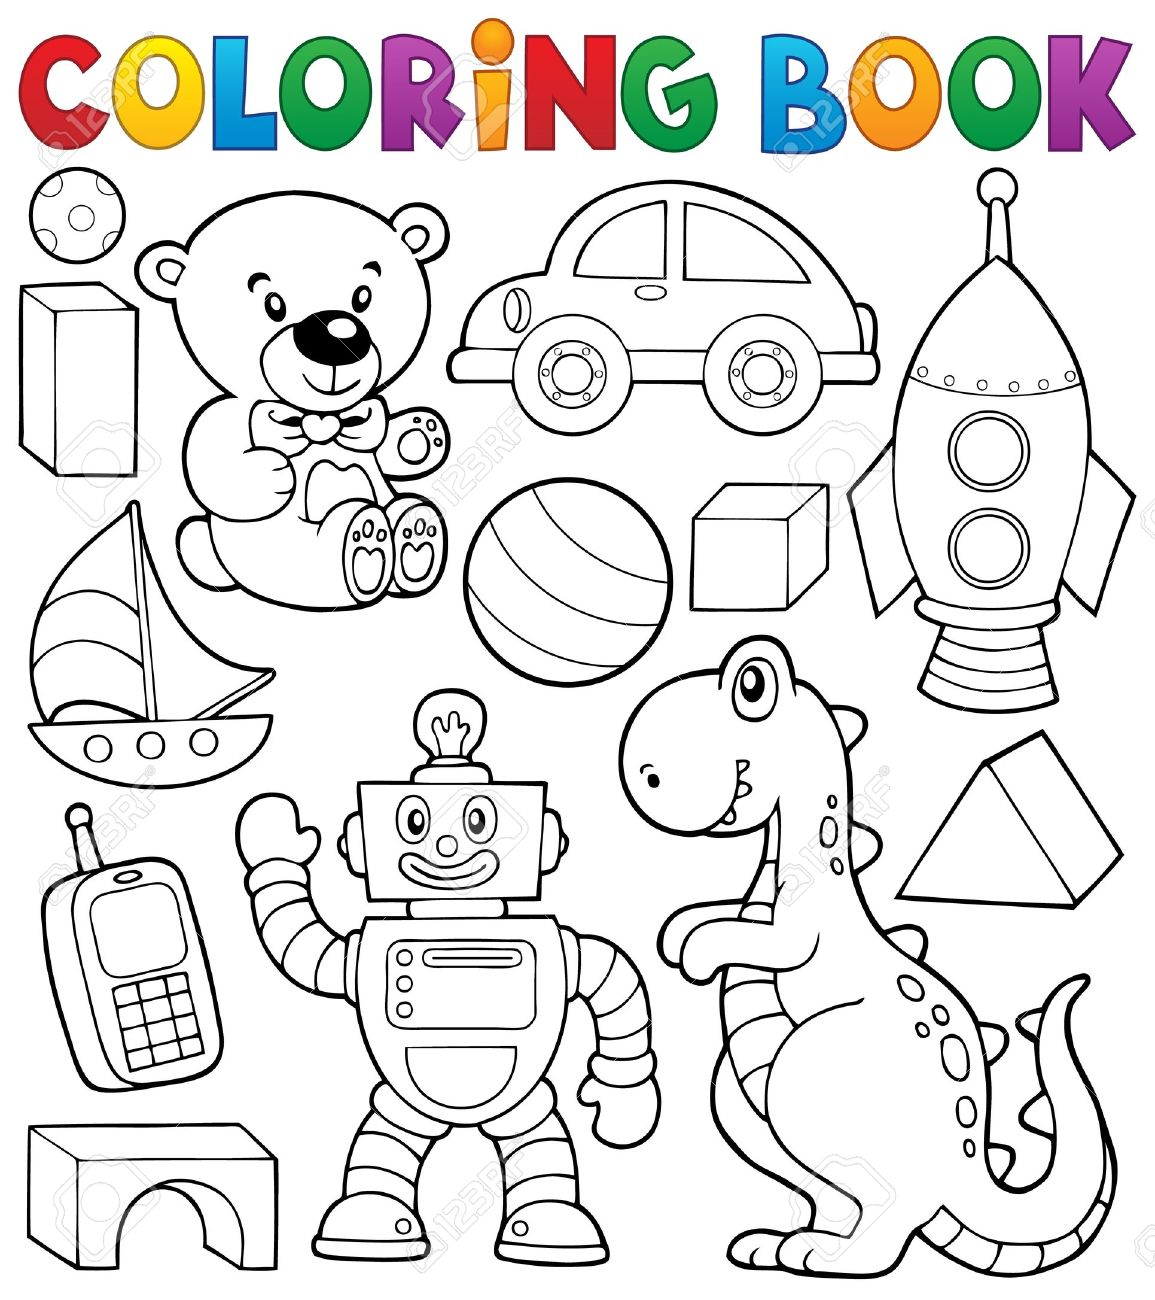 Coloring Book With Toys Thematic Stock Vector